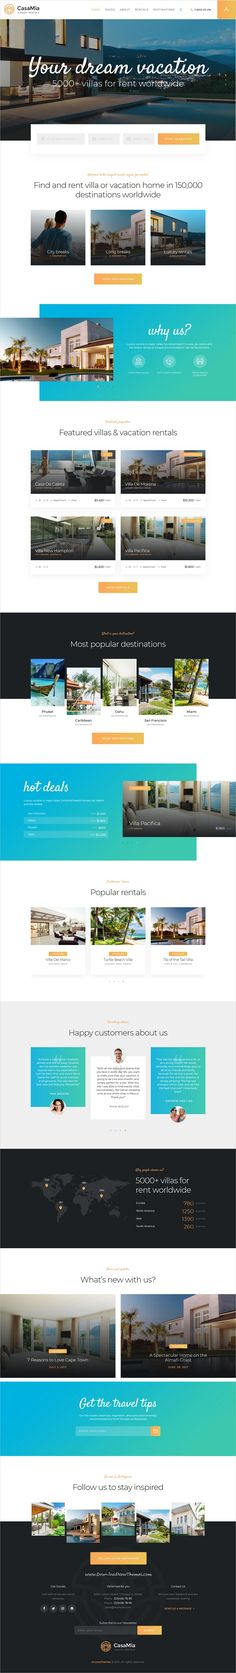 CasaMia is clean and modern design 3in1 responsive #WordPress theme for #realestate and property #rental business website to live preview & download click on Visit 👆